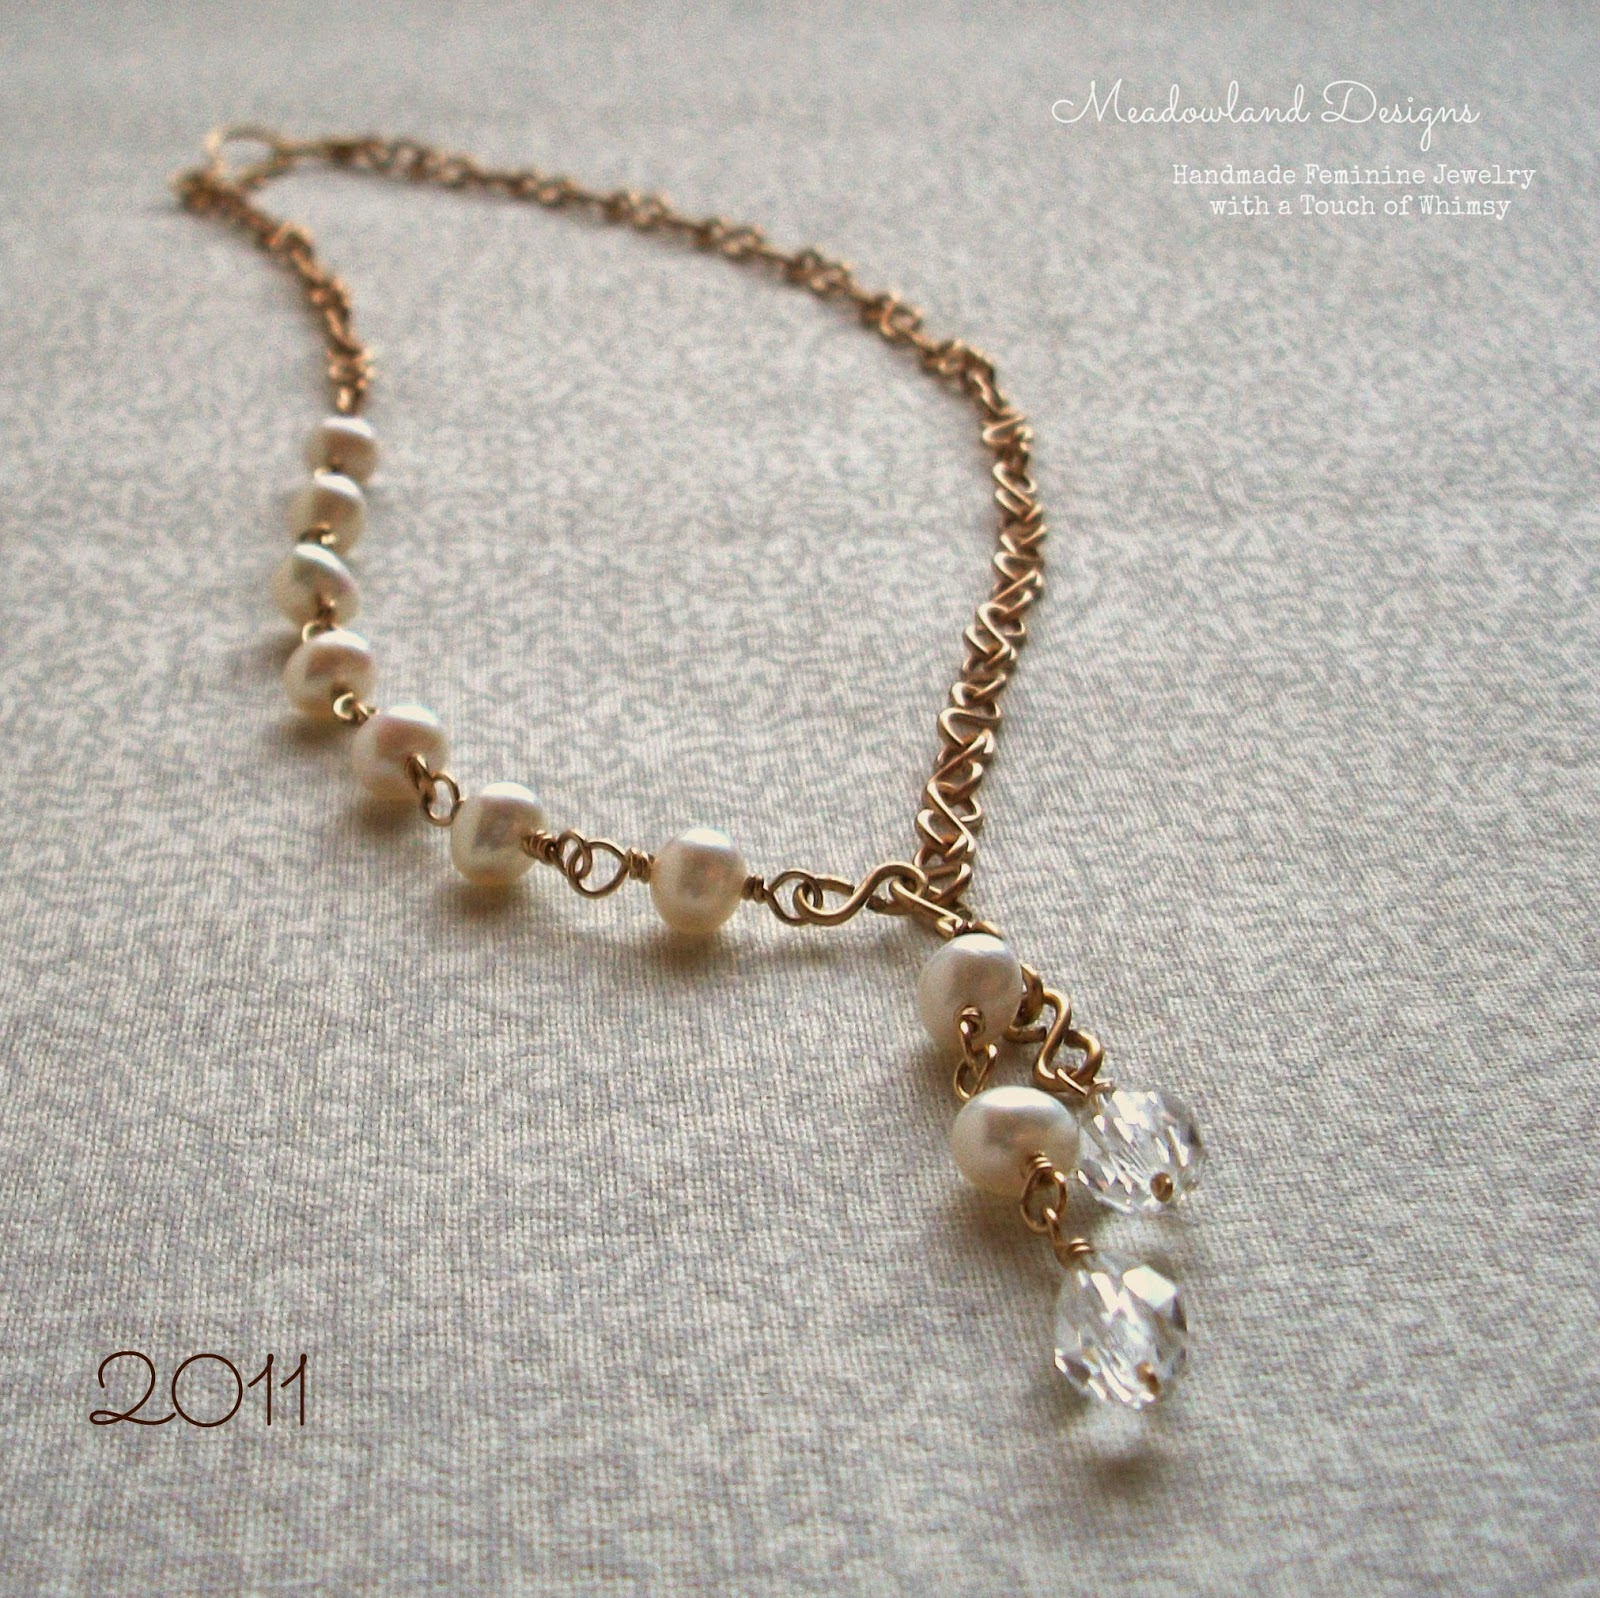 Asymmetrical Pearl Wirework Necklace with vintage crystal, 2011